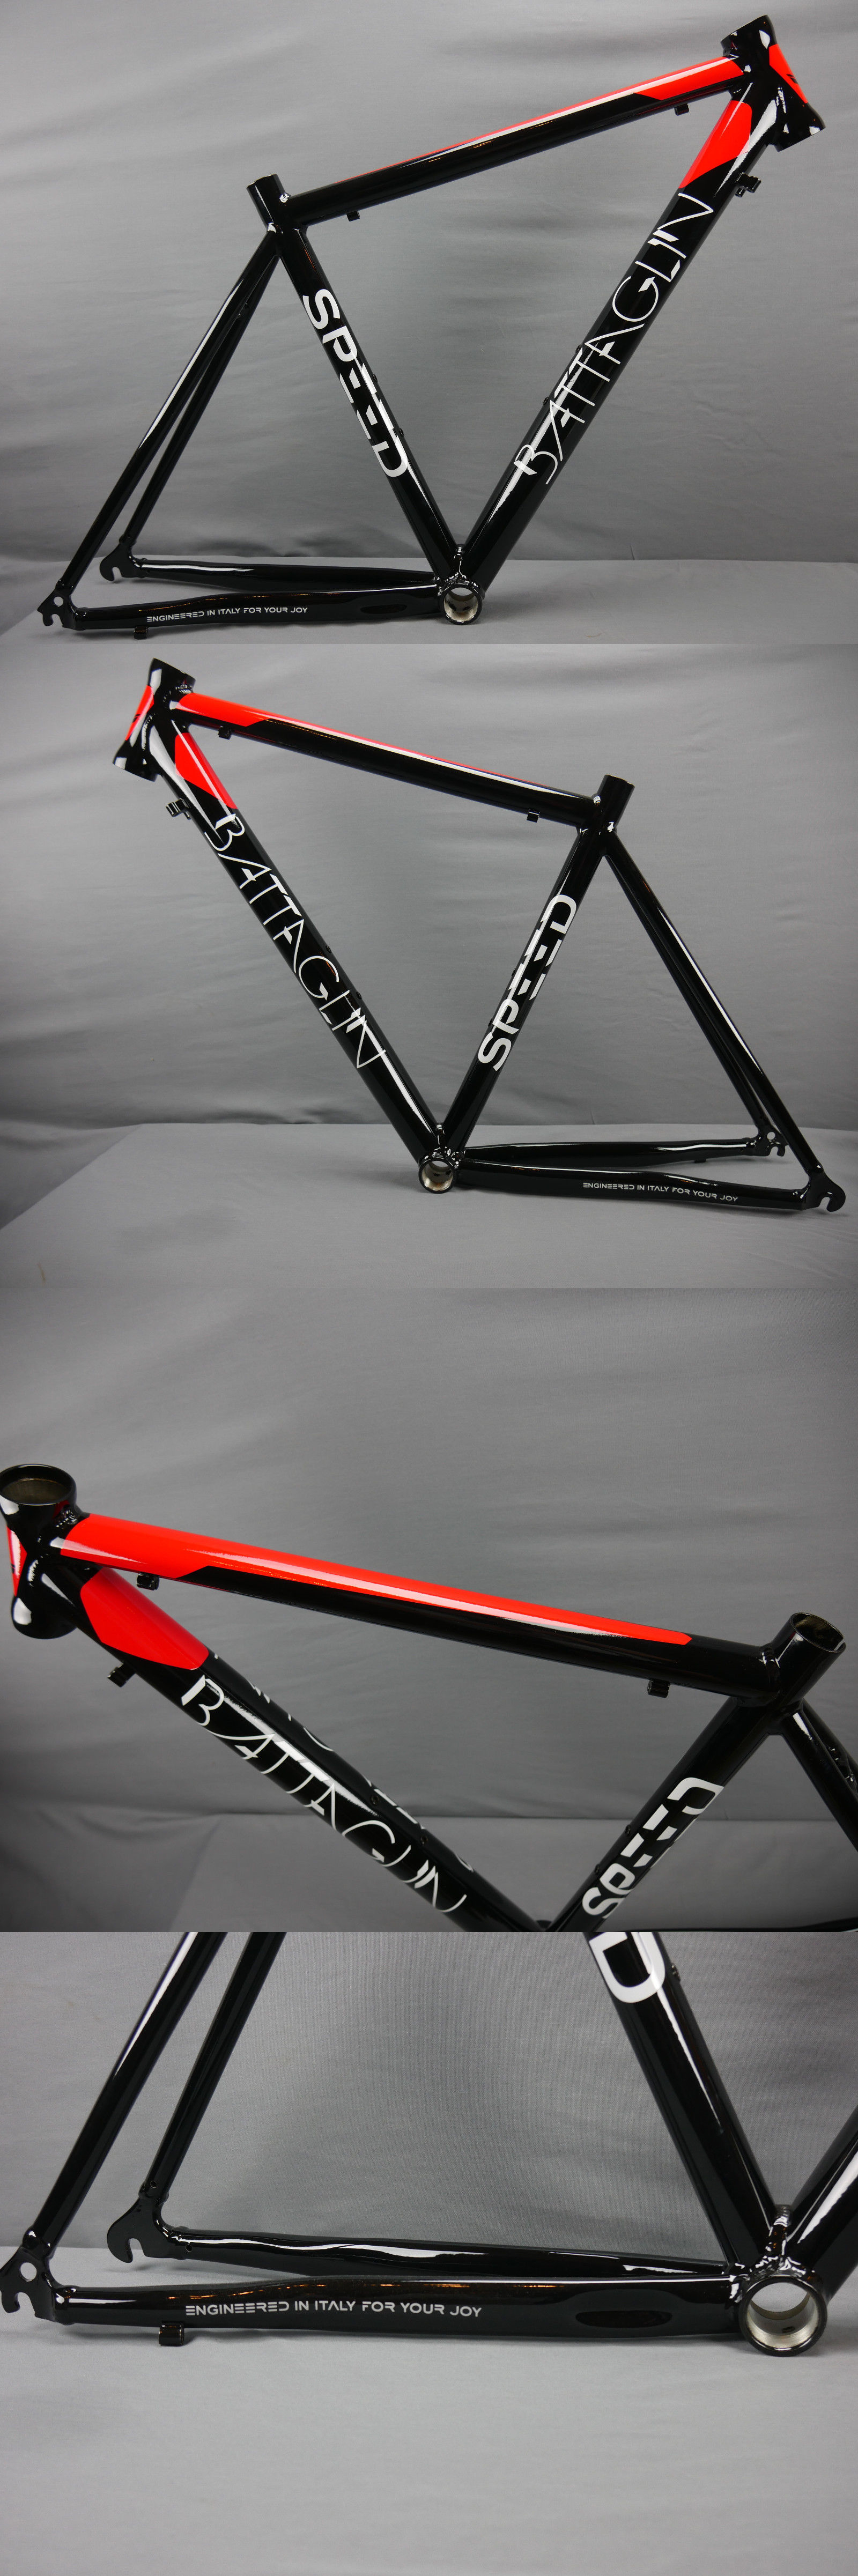 bicycle parts officina battaglin speed italian road bike frame buy it now only - Ebay Bike Frames